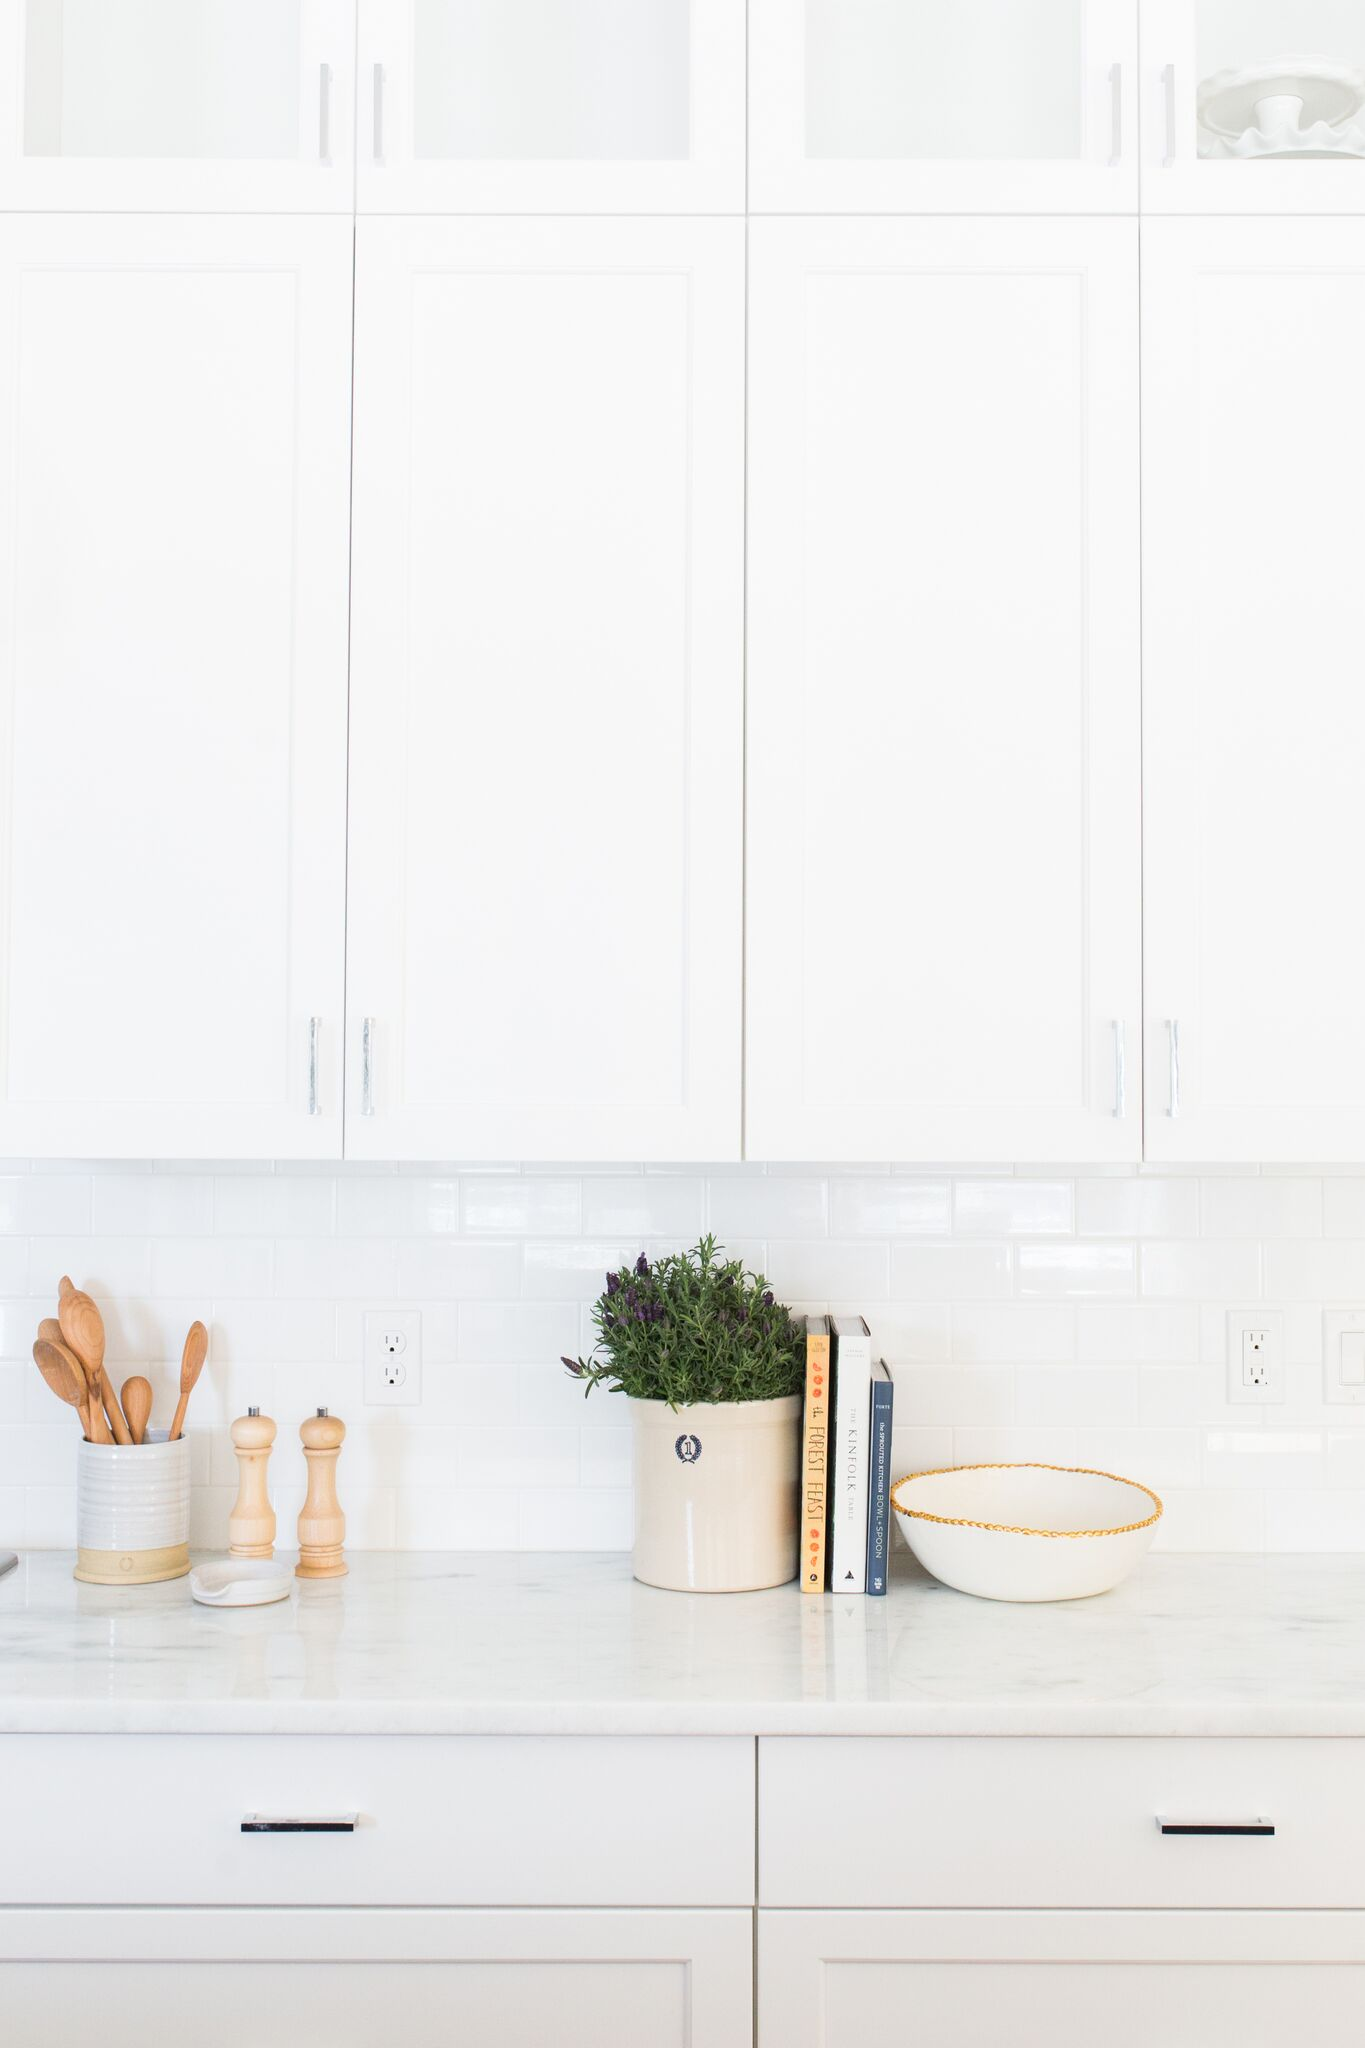 Plants and bowls on top of white counter top